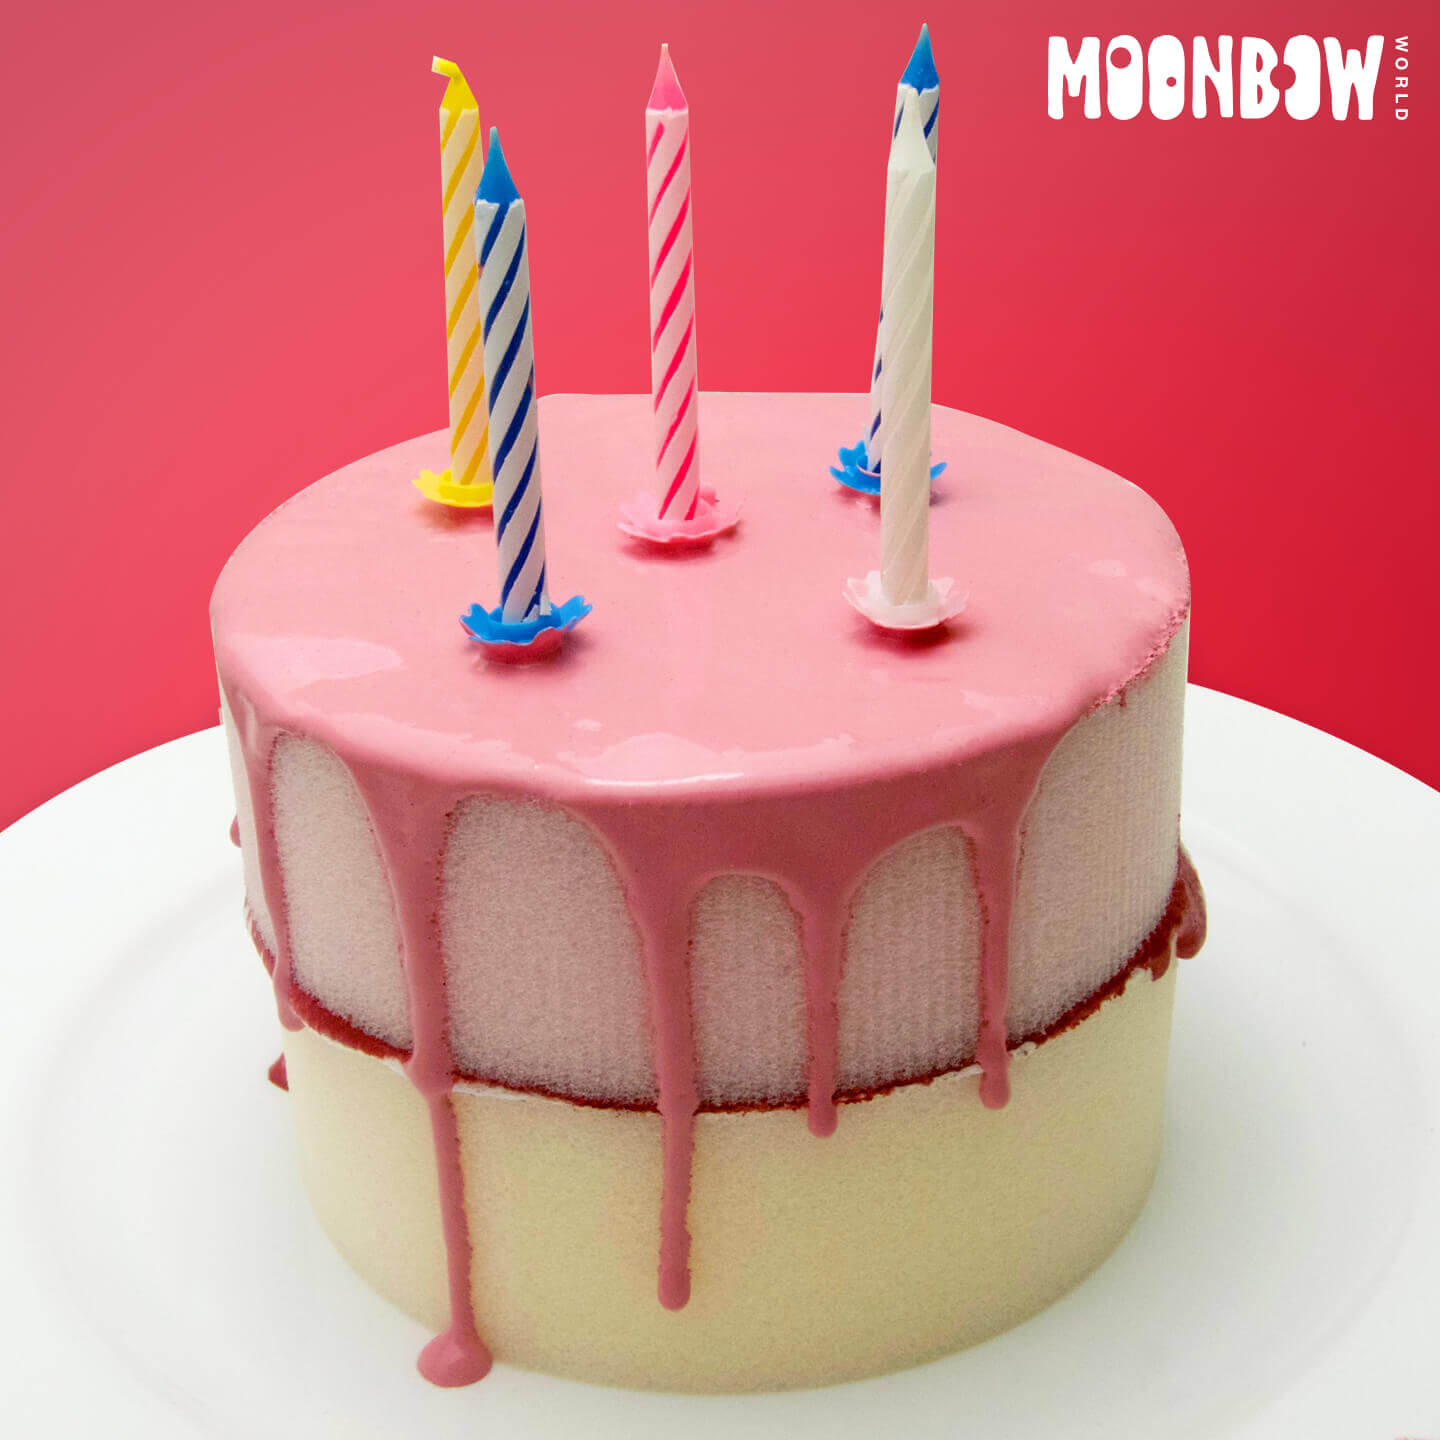 Play food / pretend birthday cake with candles.